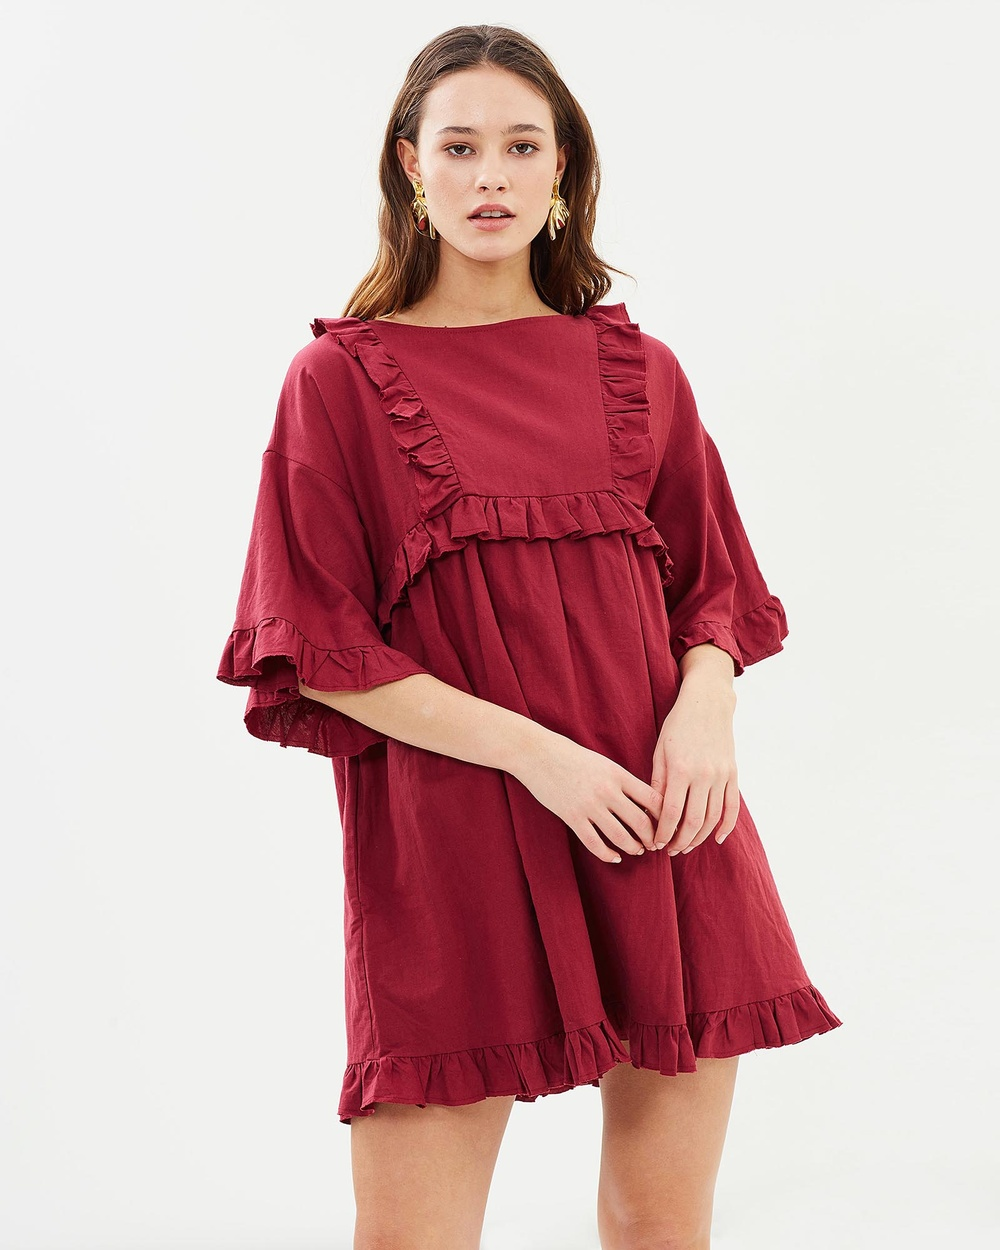 IMONNI Lyla Cotton Linen Dress Dresses Berry Lyla Cotton-Linen Dress